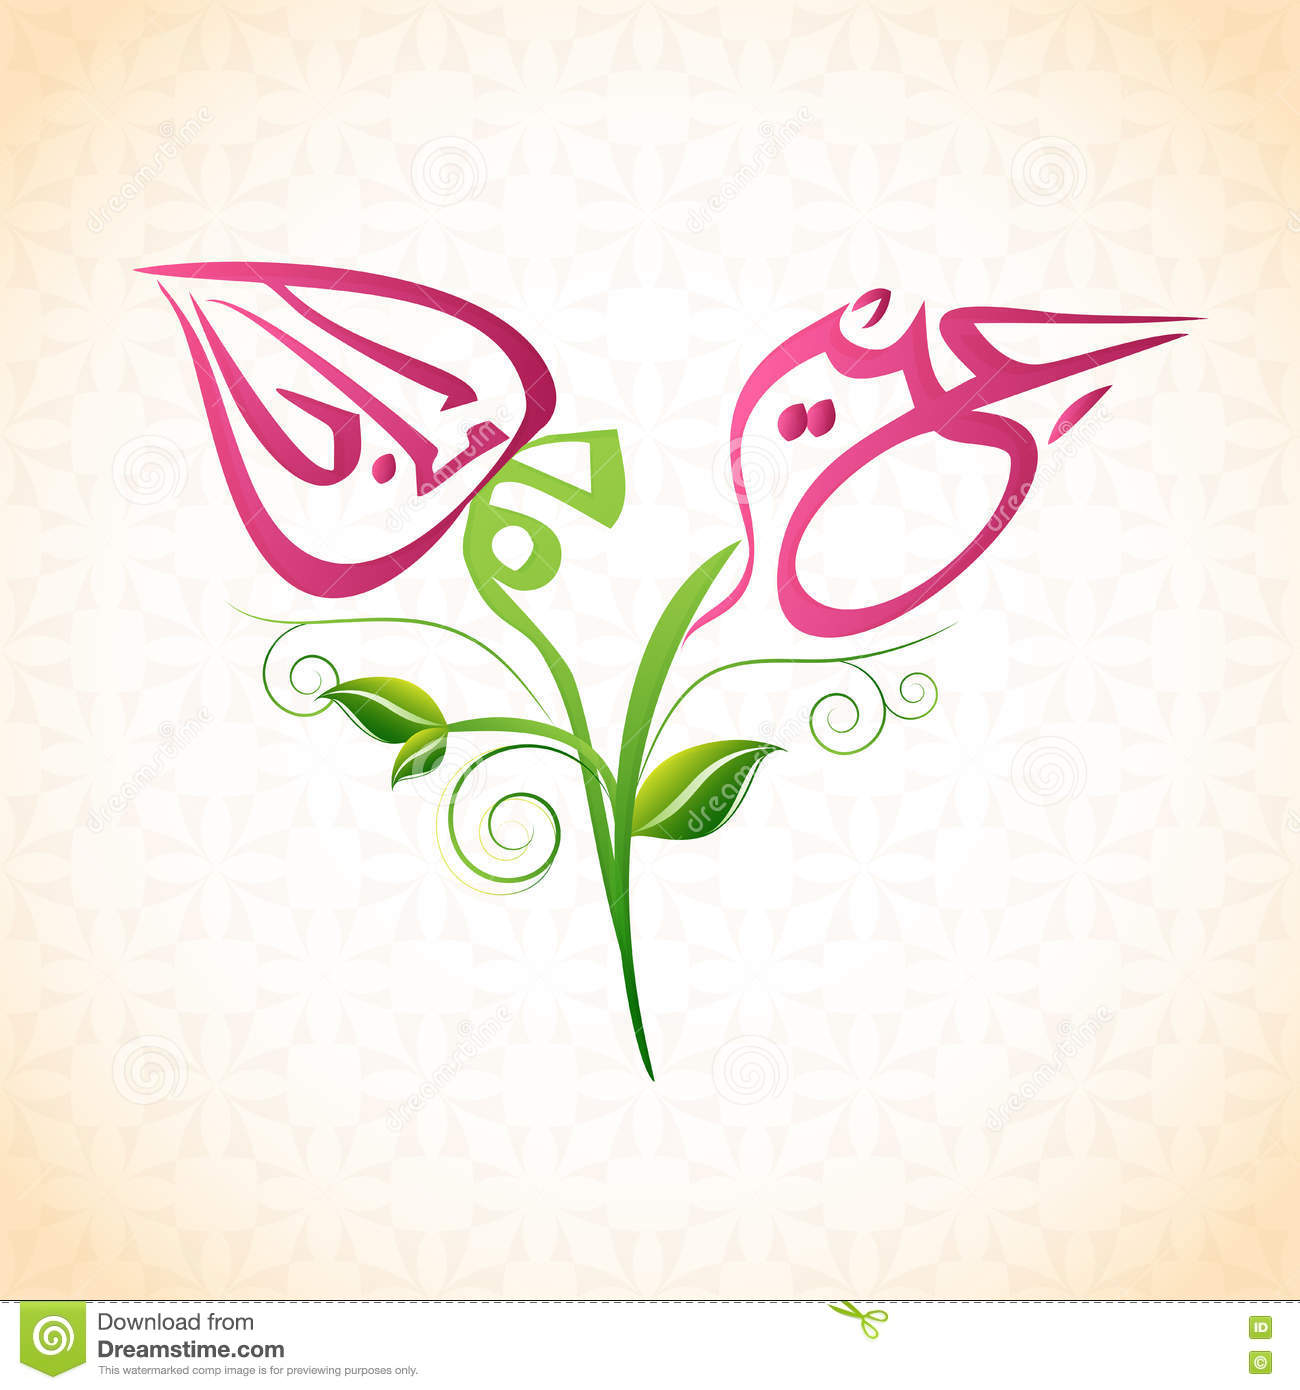 Arabic calligraphy for eid mubarak celebration stock